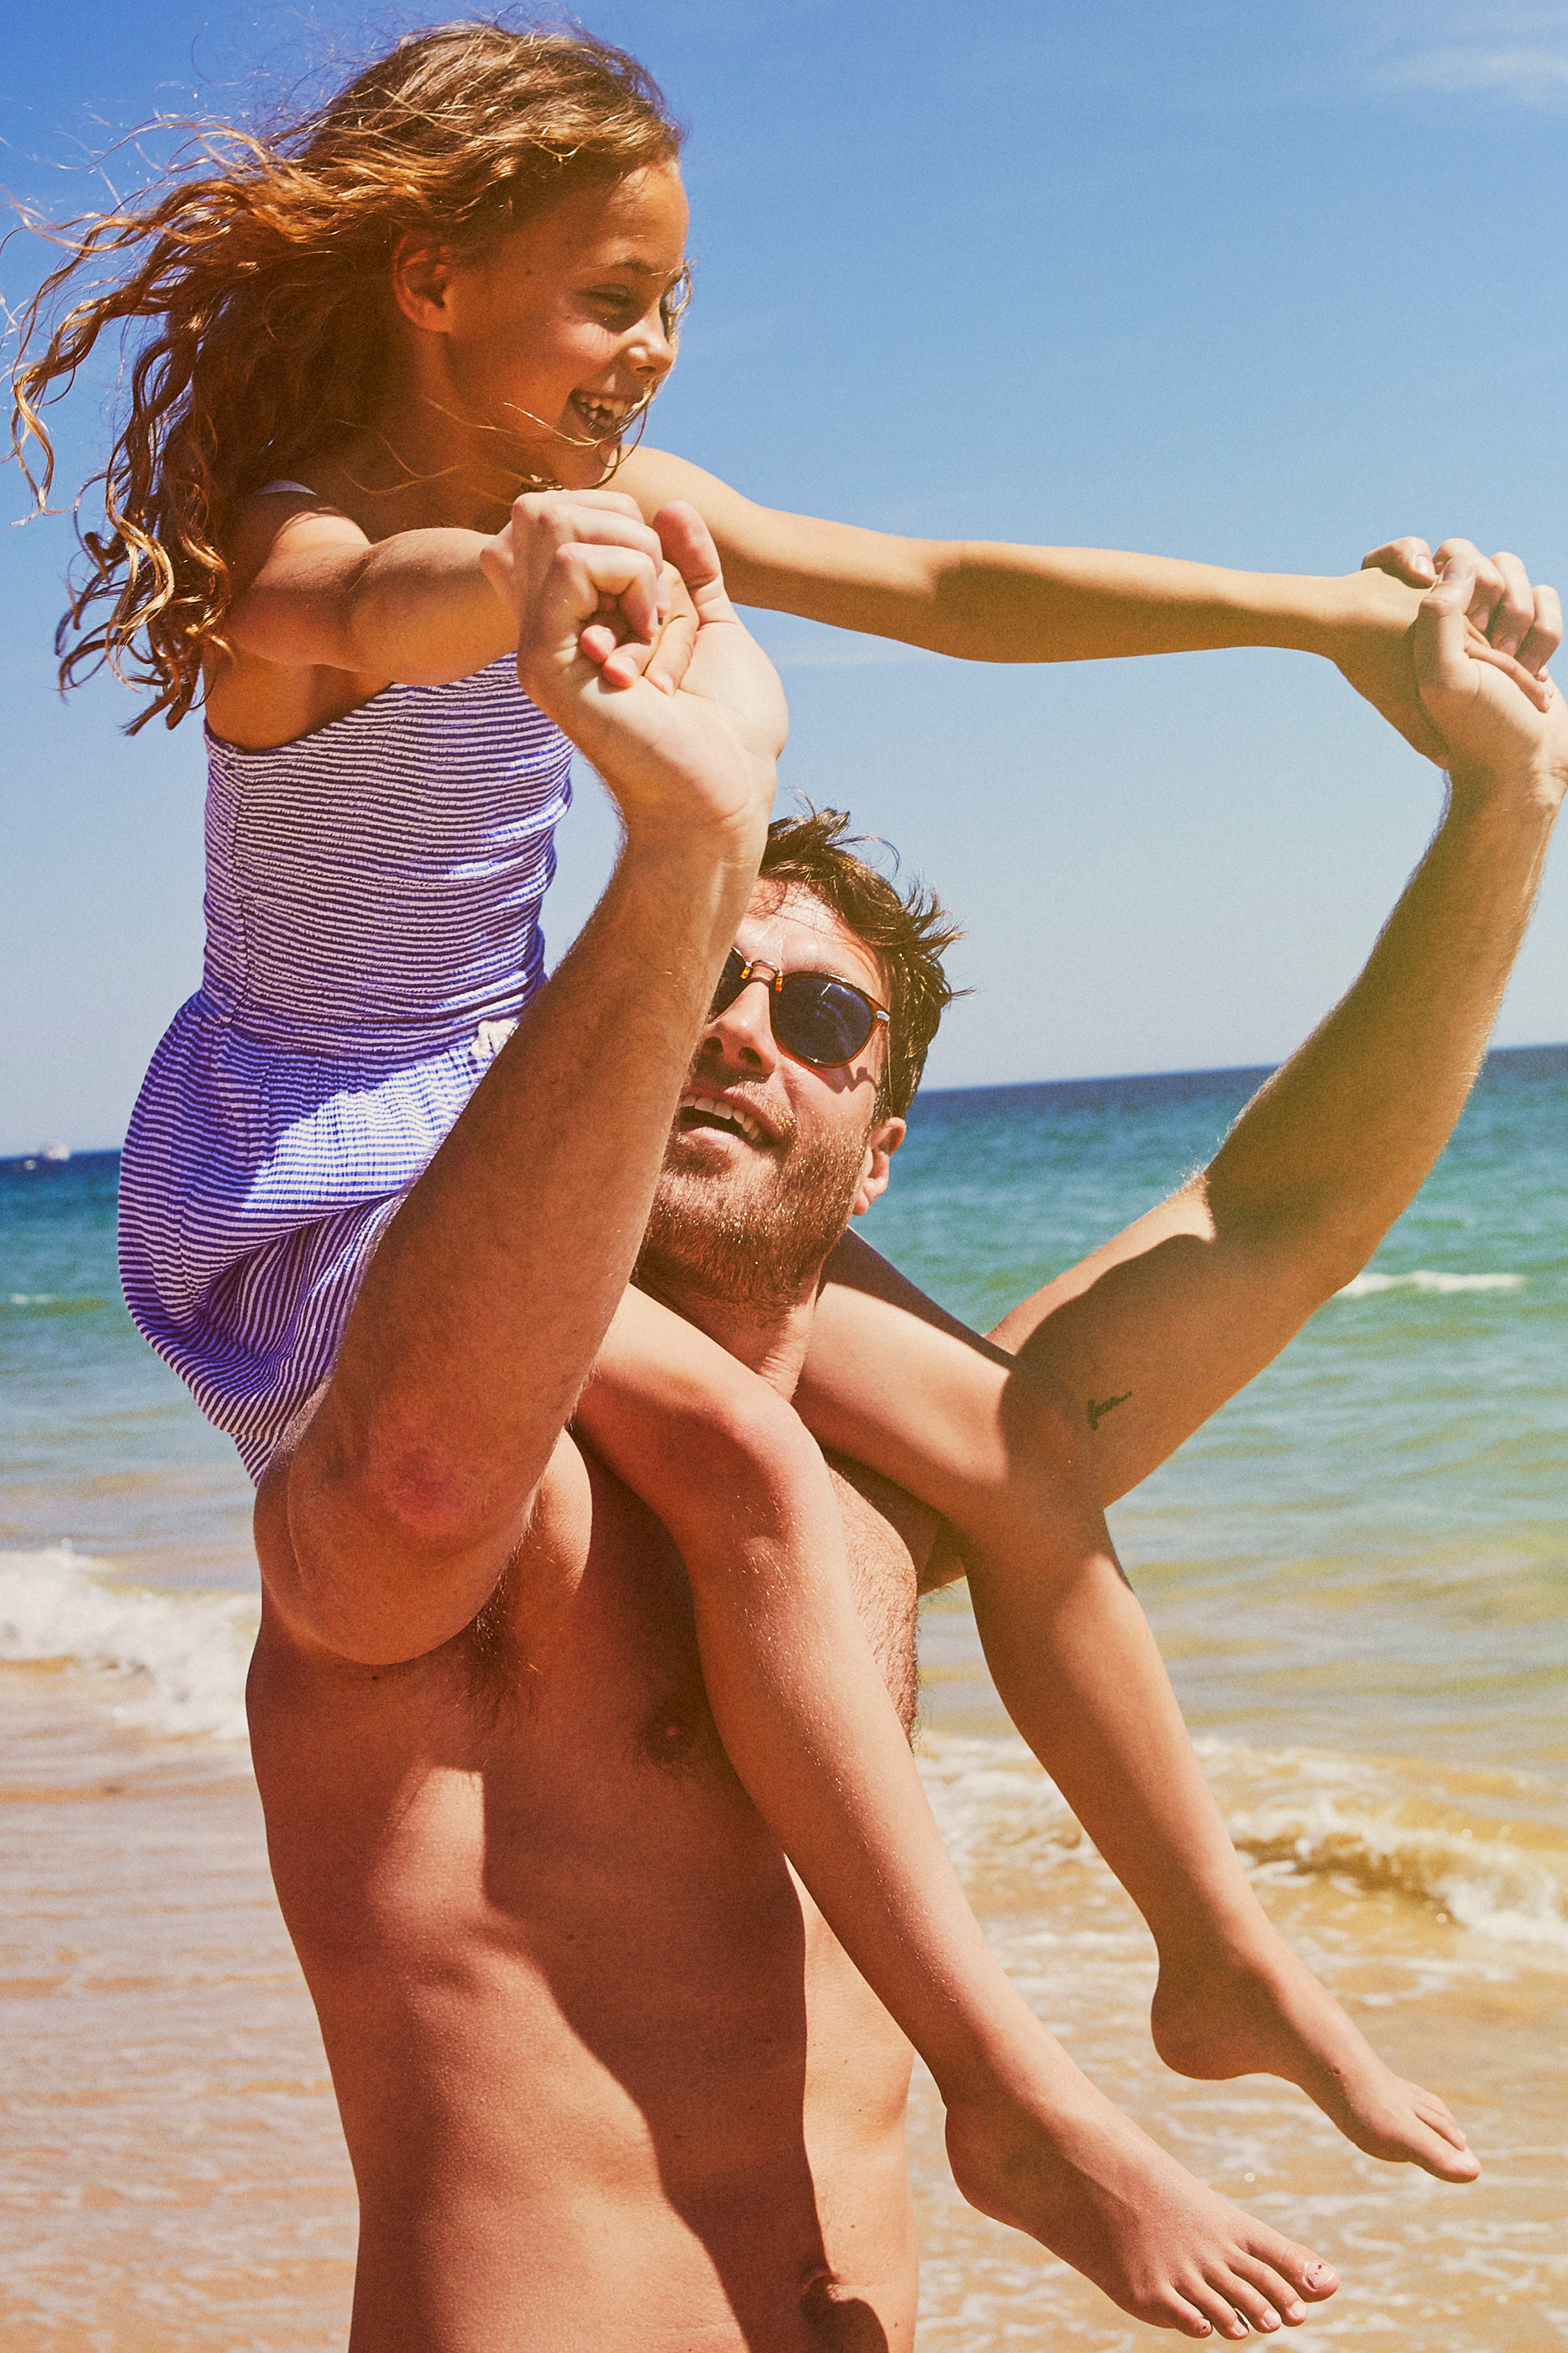 Dad and girl on beach